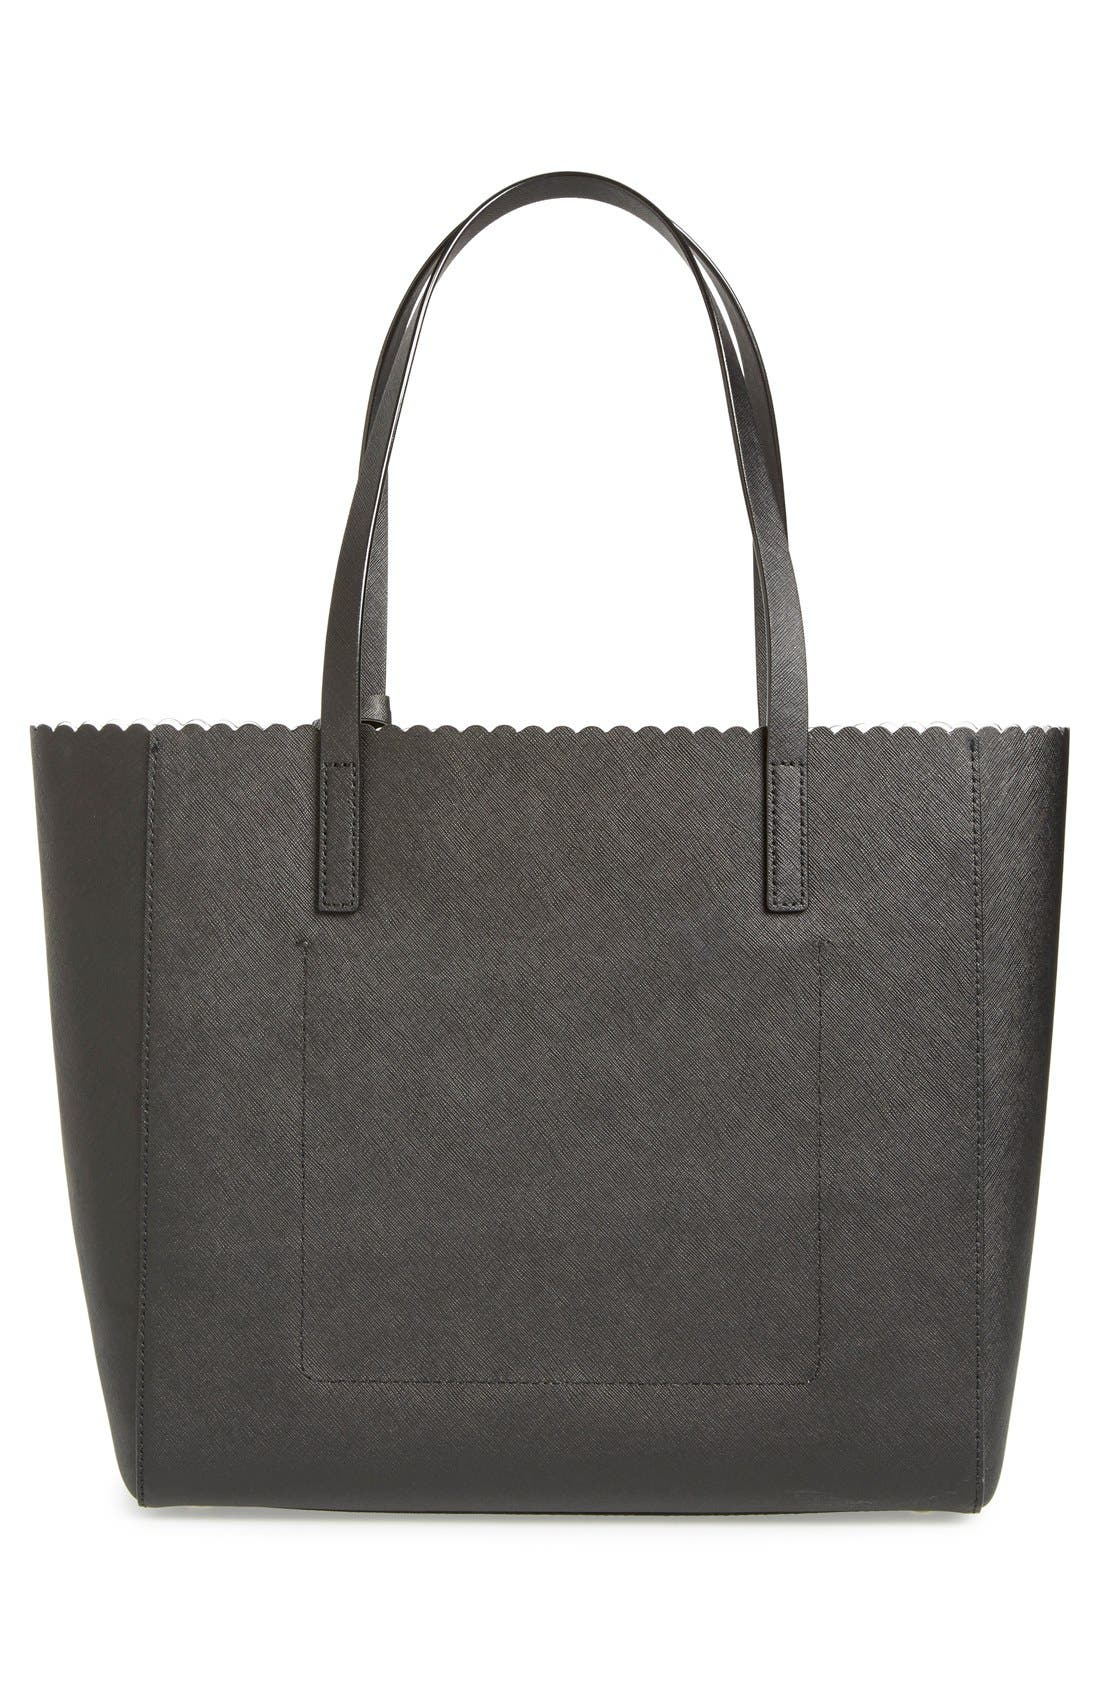 KATE SPADE NEW YORK,                             'cape drive - hallie' scalloped saffiano leather tote,                             Alternate thumbnail 2, color,                             002